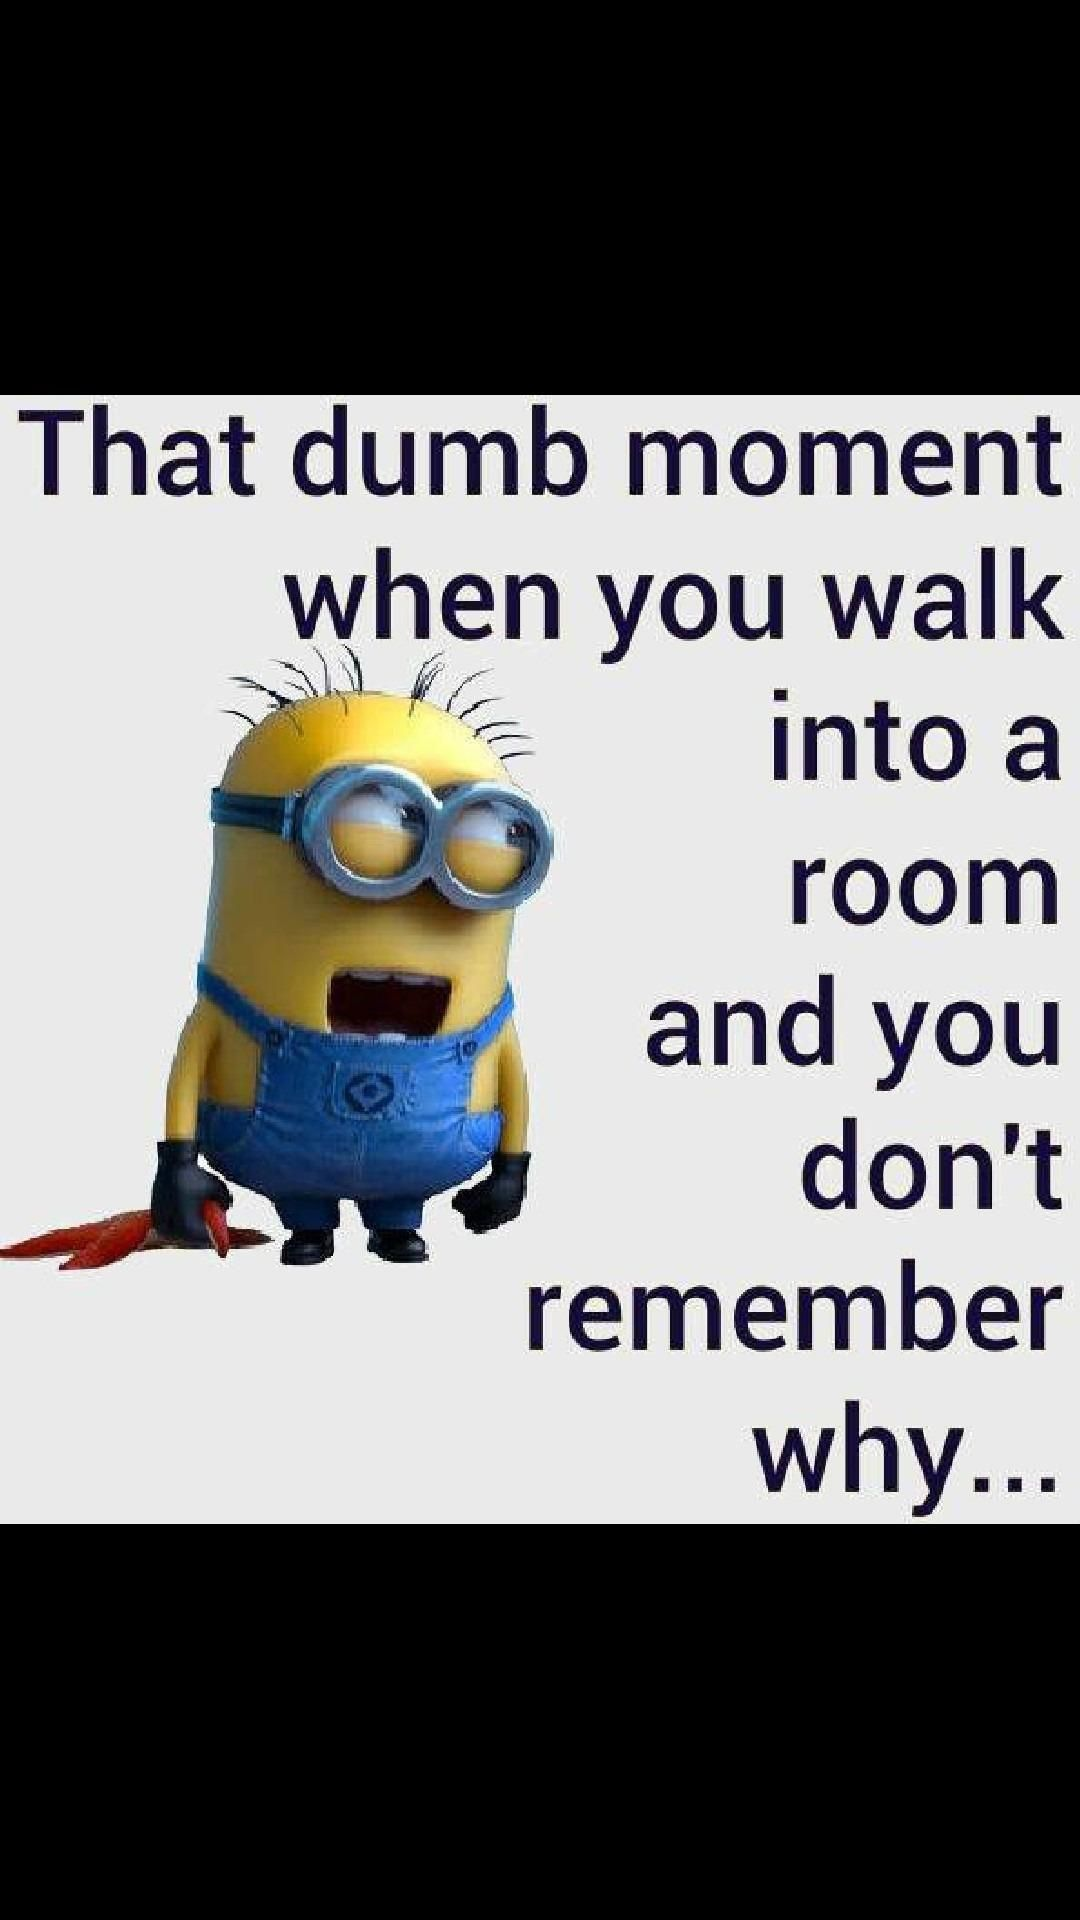 That dumb moment when you walk into a room